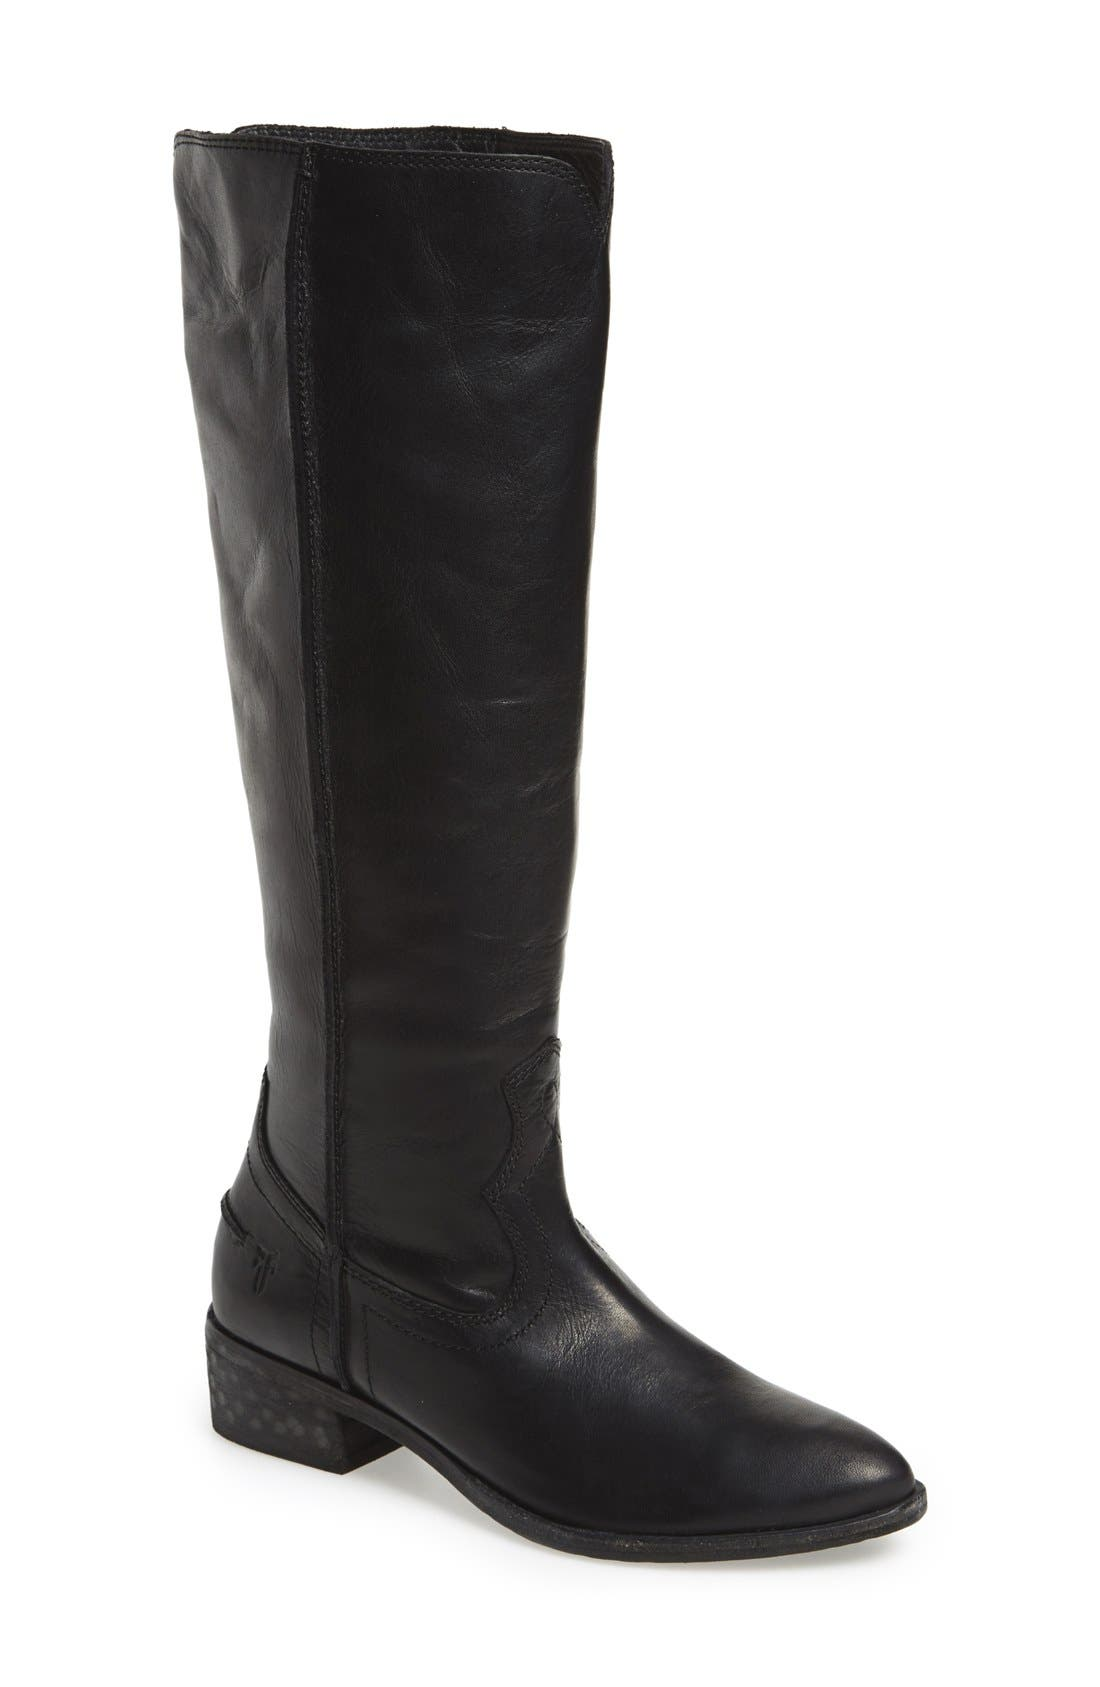 FRYE 'Ray Seam' Tall Boot, Main, color, 001